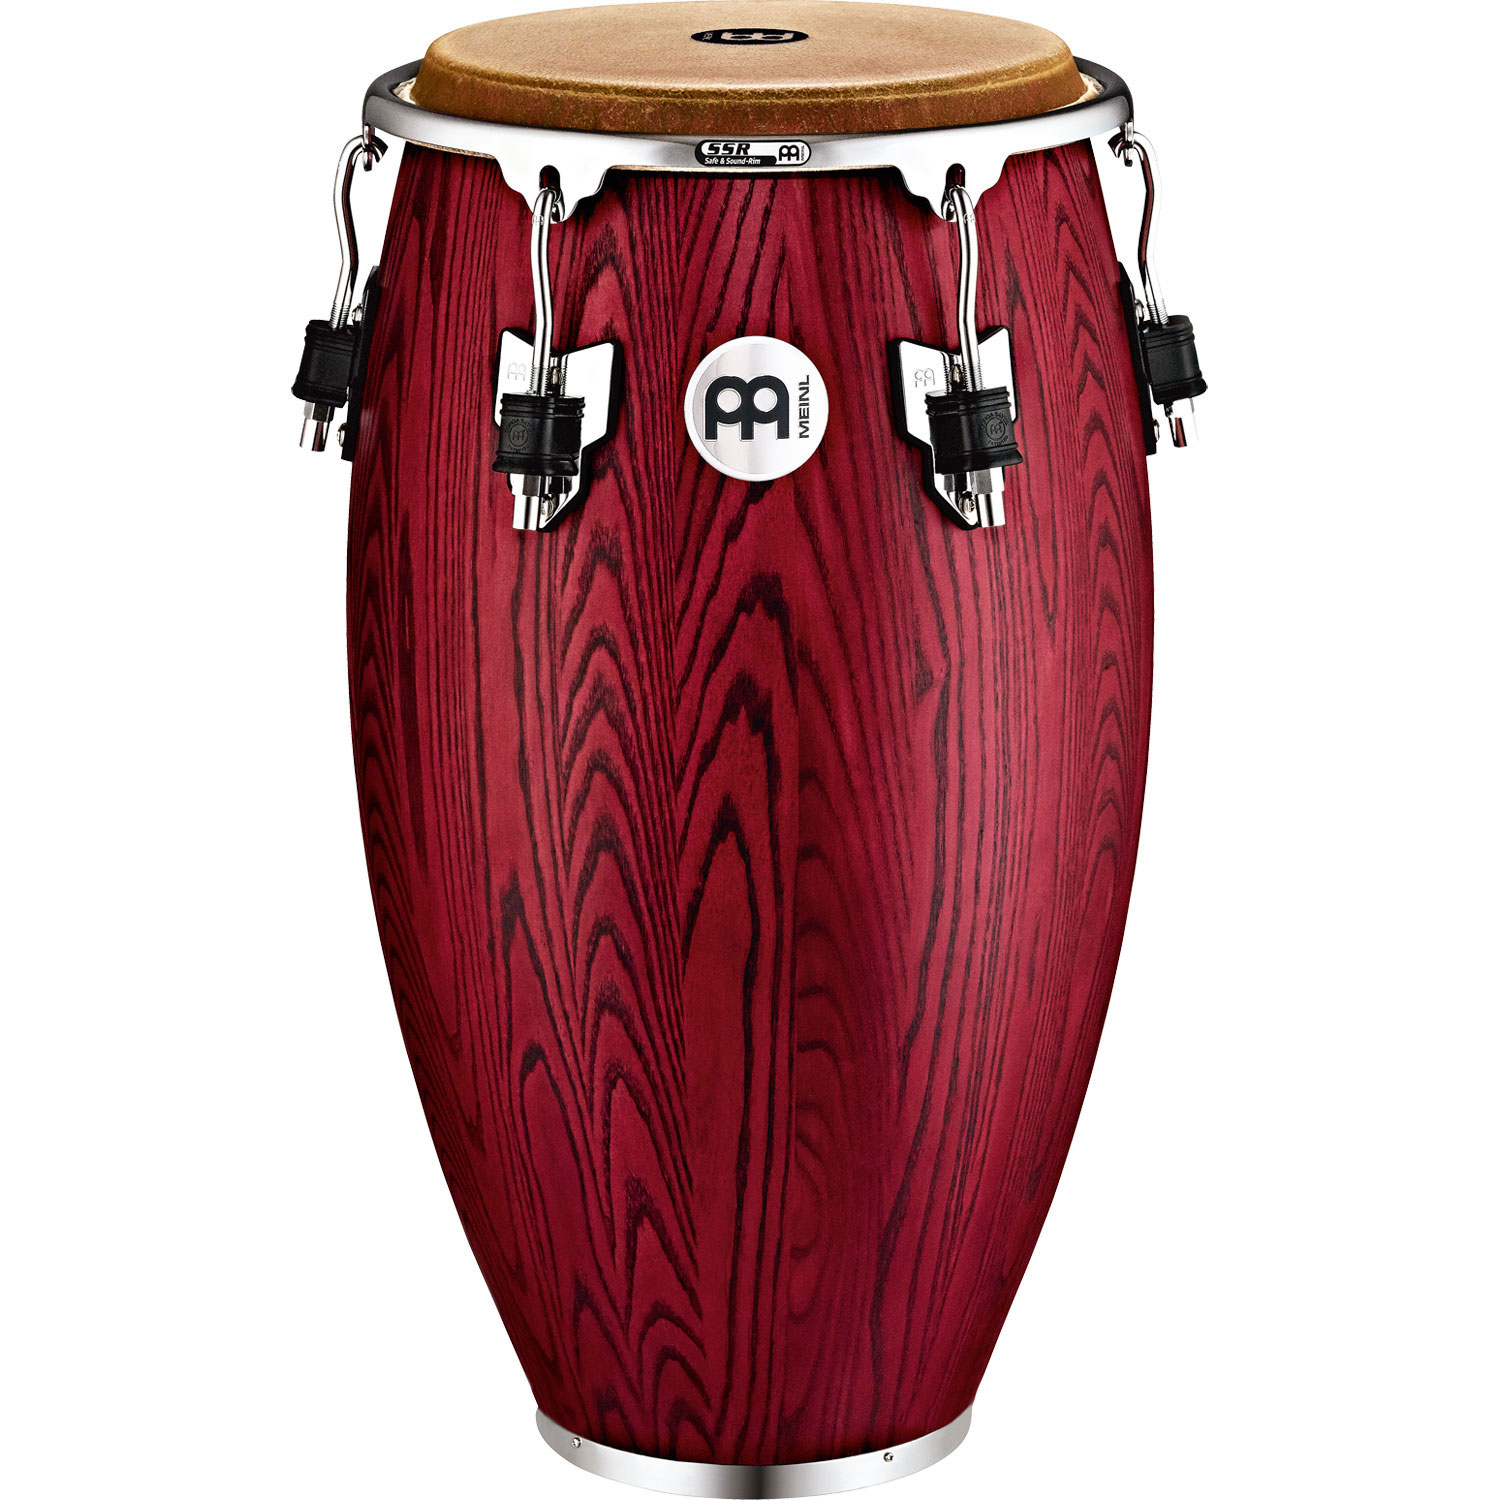 "Meinl 11.75"" Woodcraft Series Conga in Vintage Red"